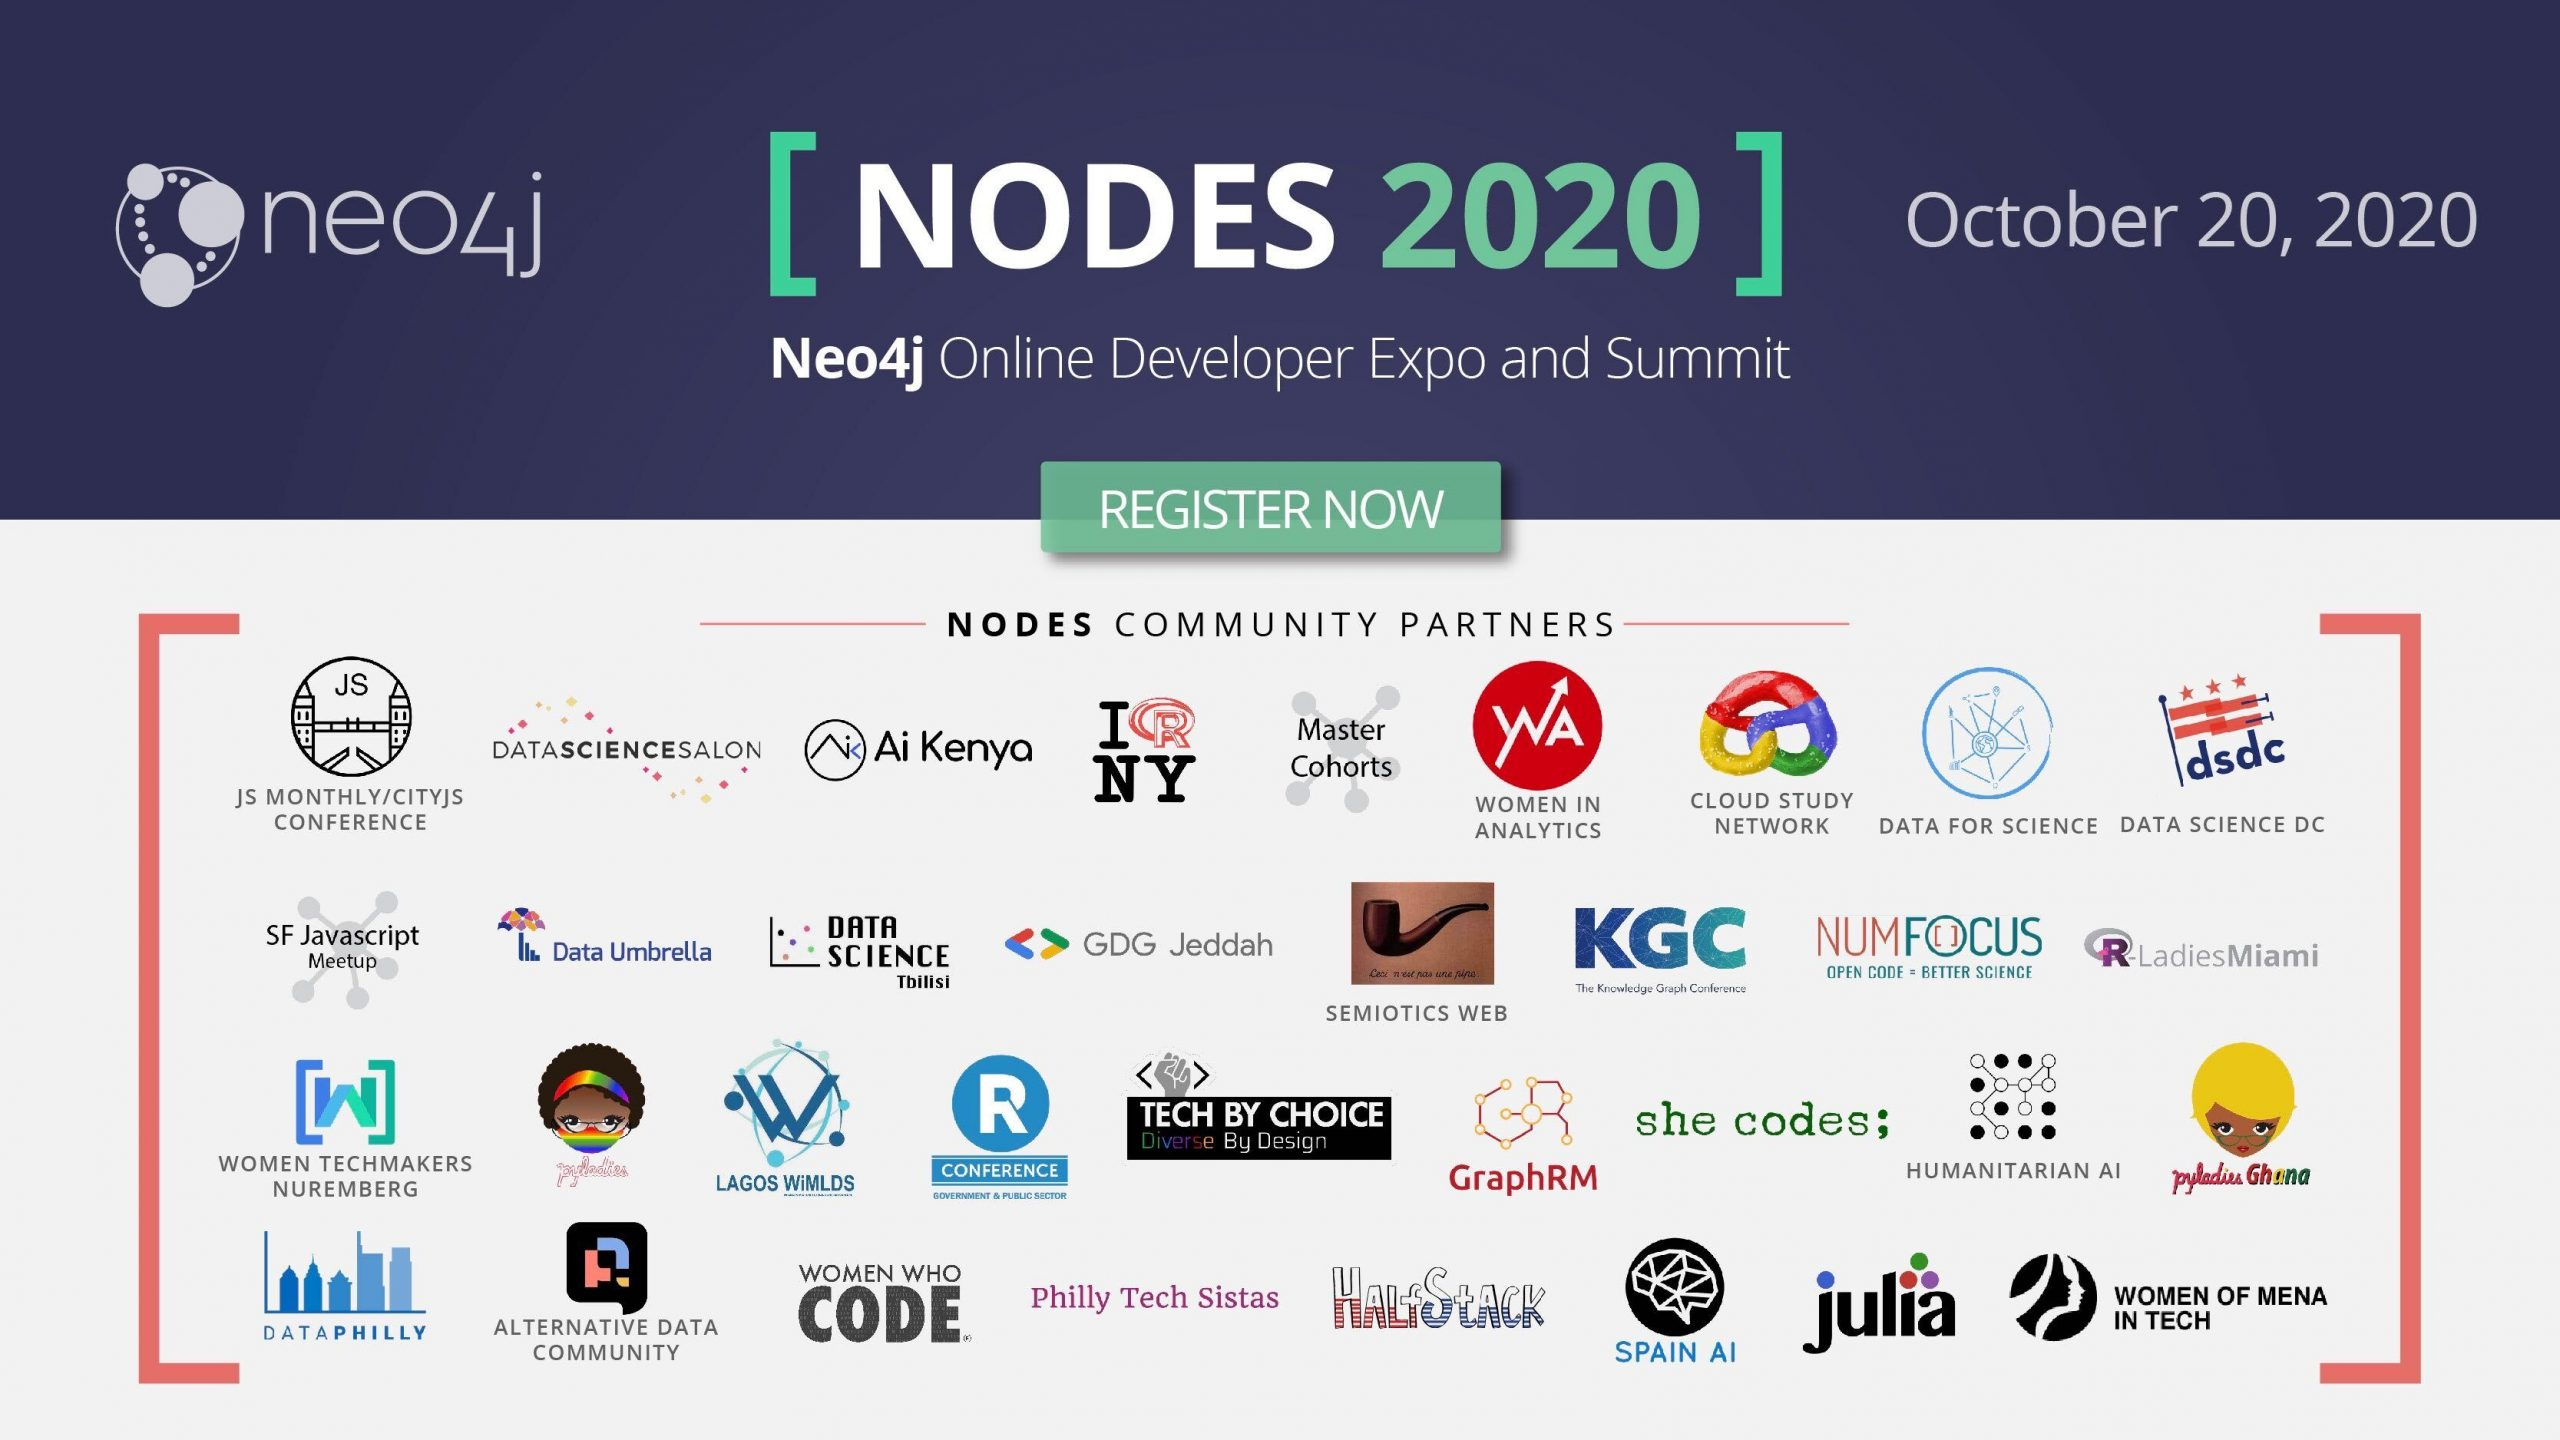 NODES 2020 Neo4j community partners.